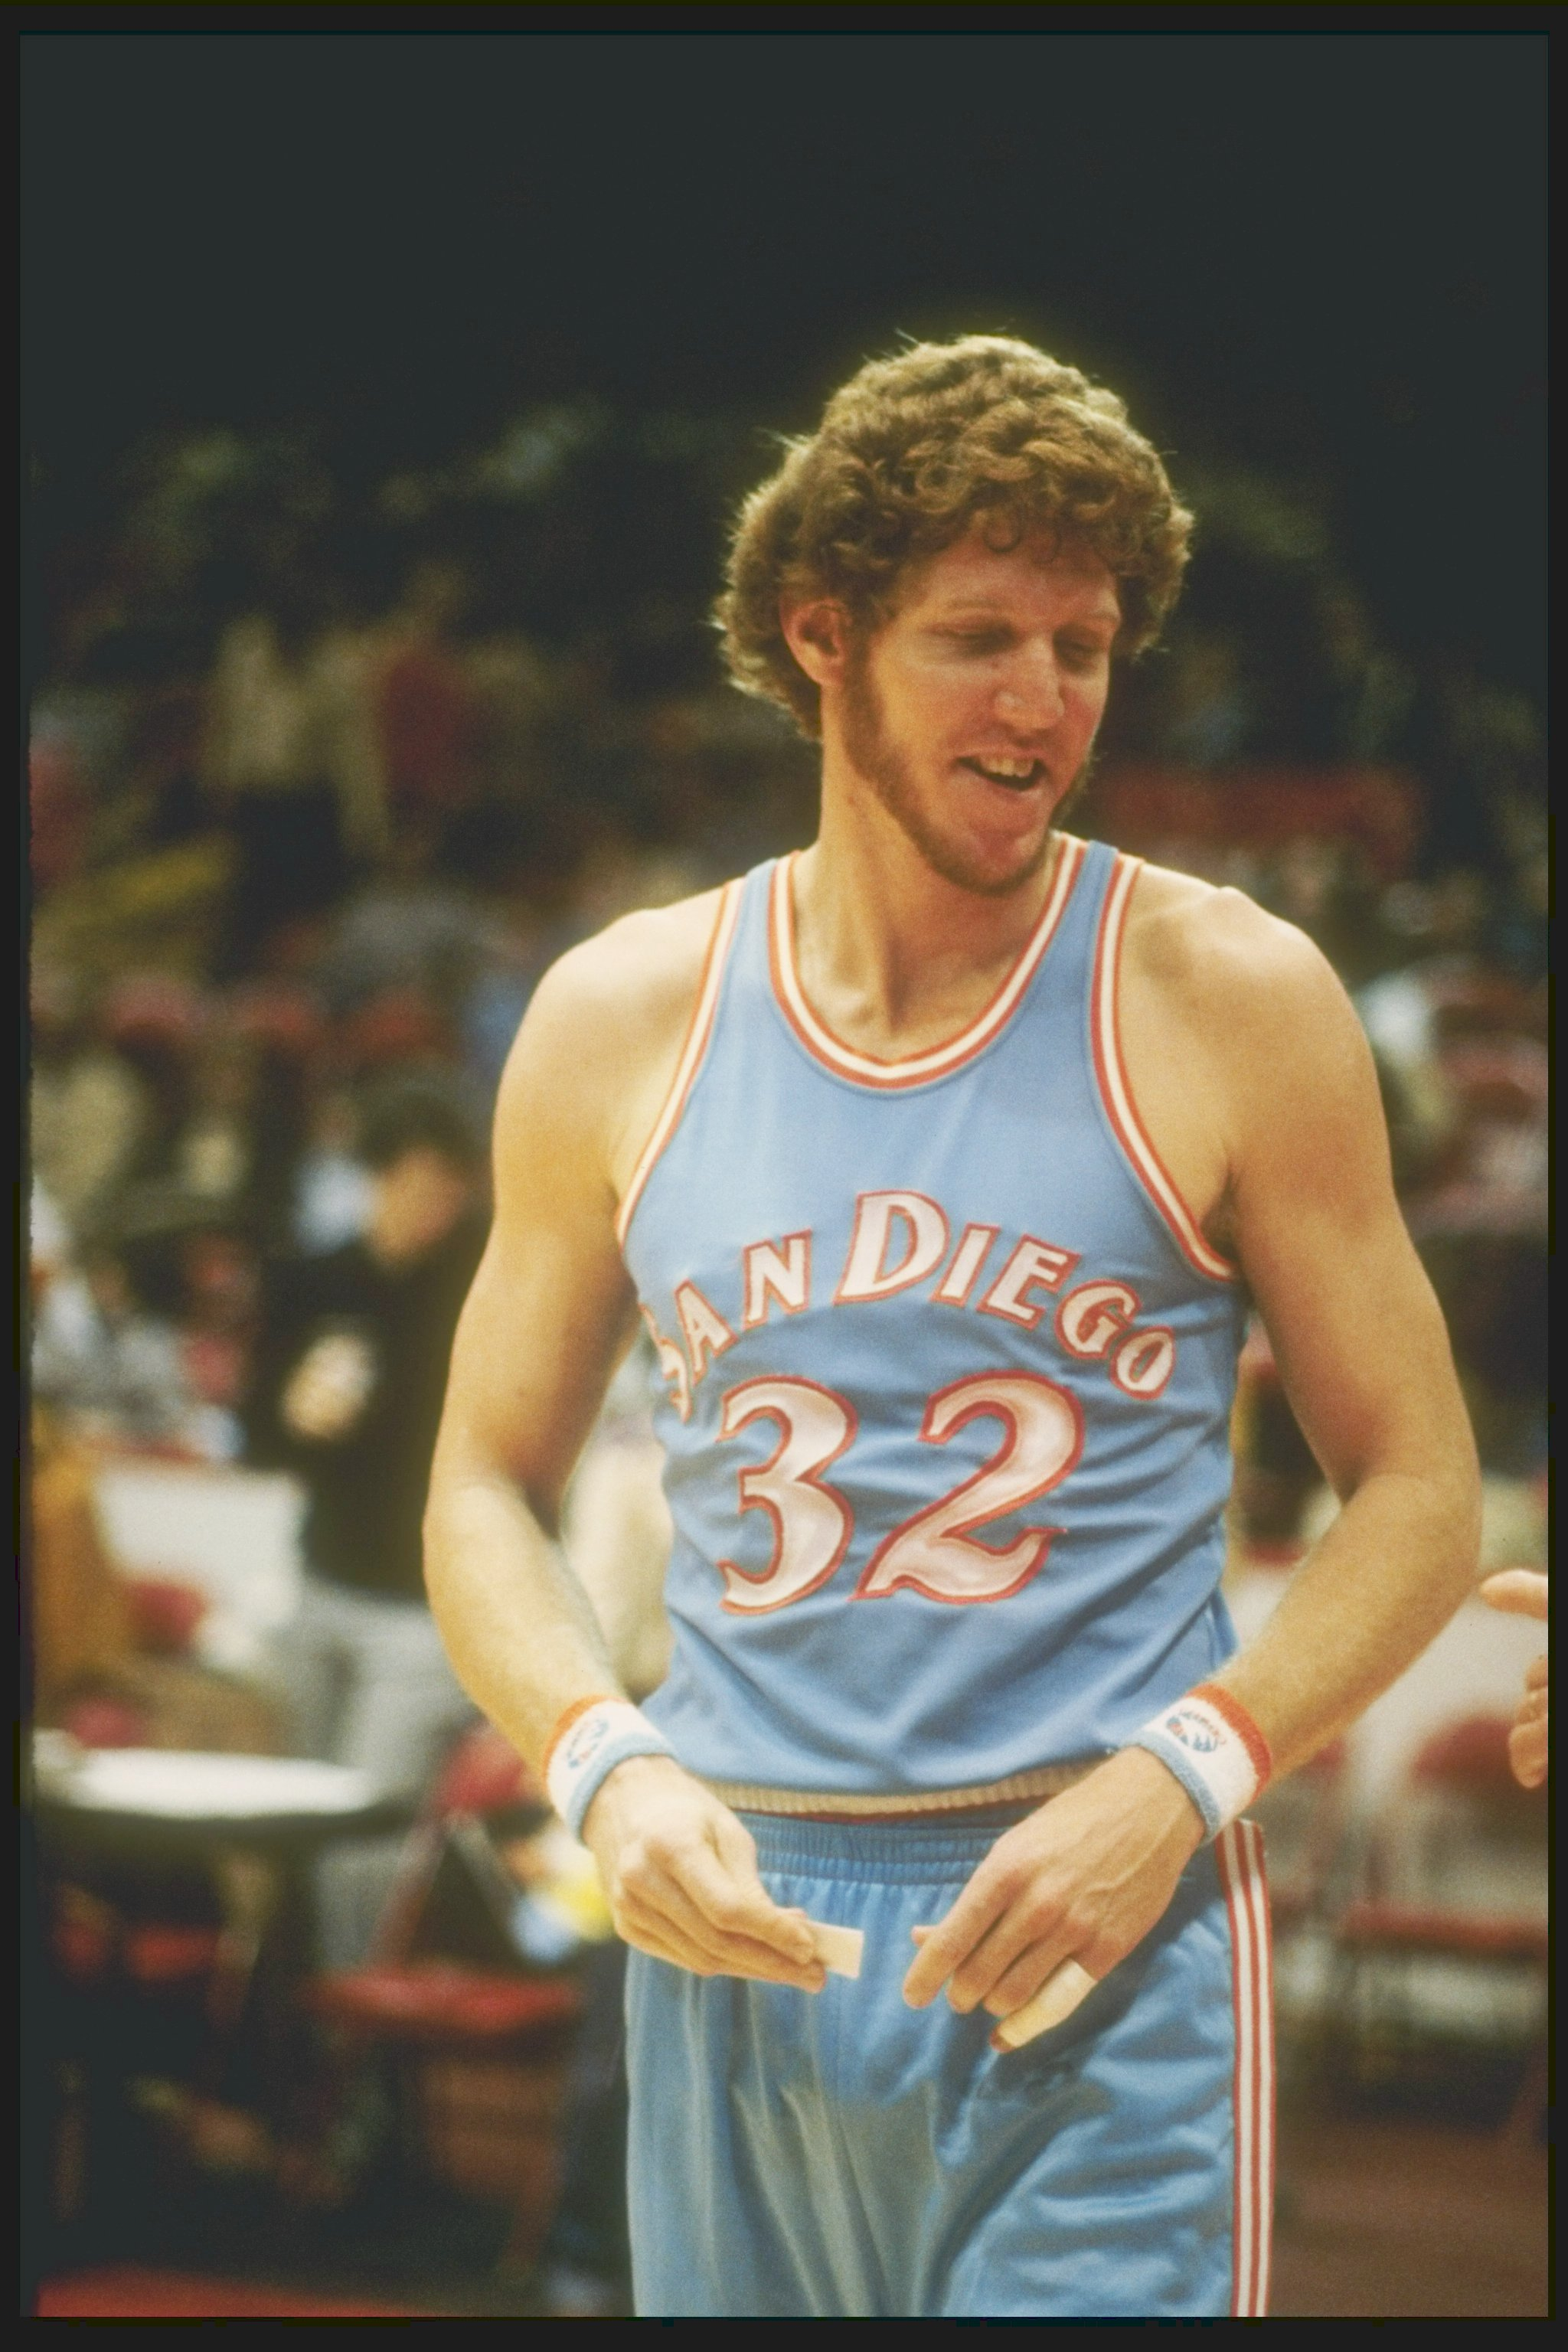 1980:  Center Bill Walton of the San Diego Clippers stands on the court during a game against the Chicago Bulls at Chicago Stadium in Chicago, Illinois.  Mandatory Credit: Jonathan Daniel  /Allsport